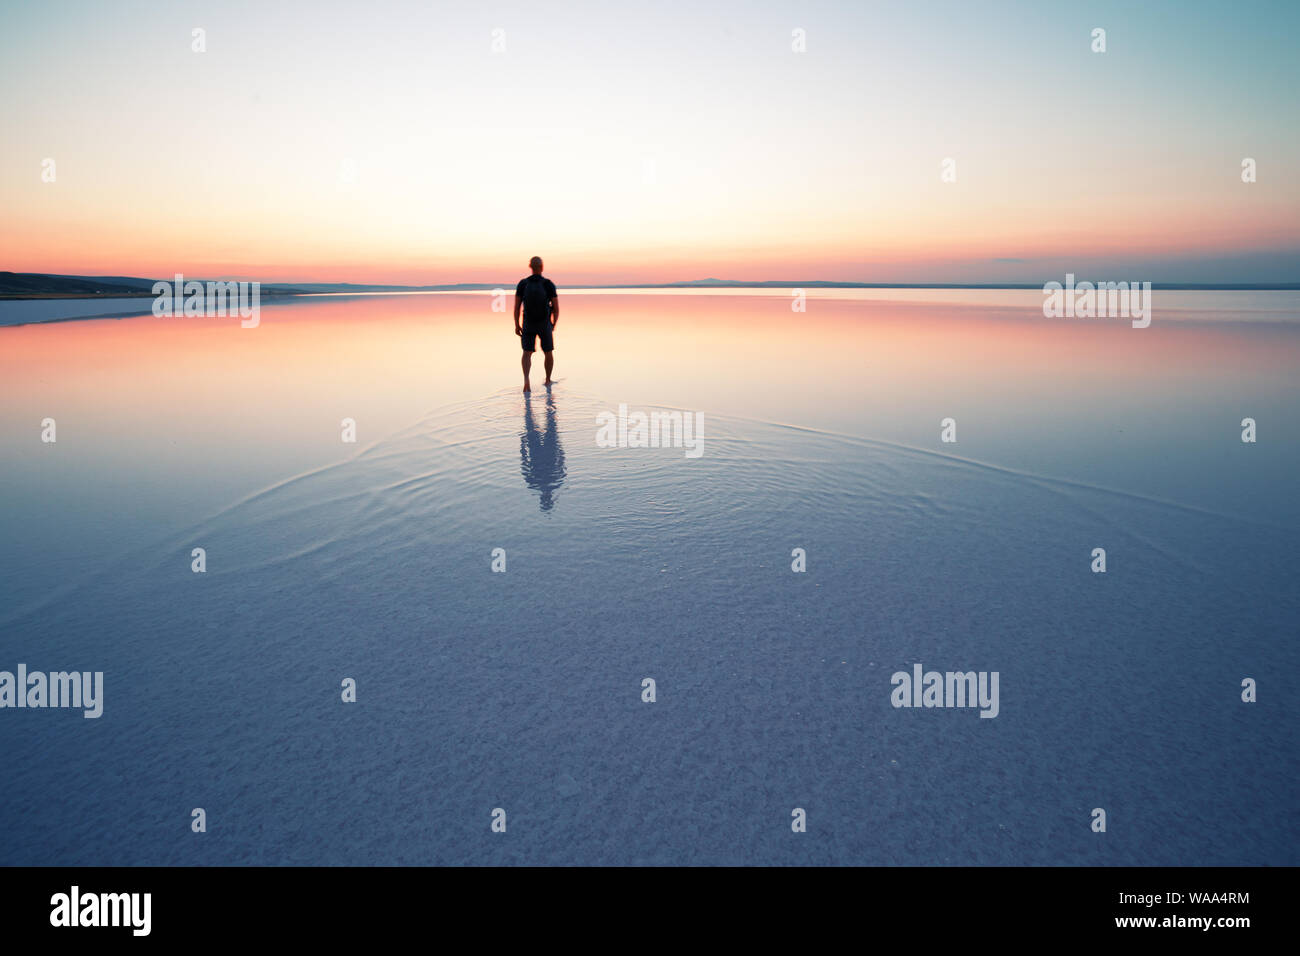 Silhouette of man departing into sunset on smooth water of lake Stock Photo